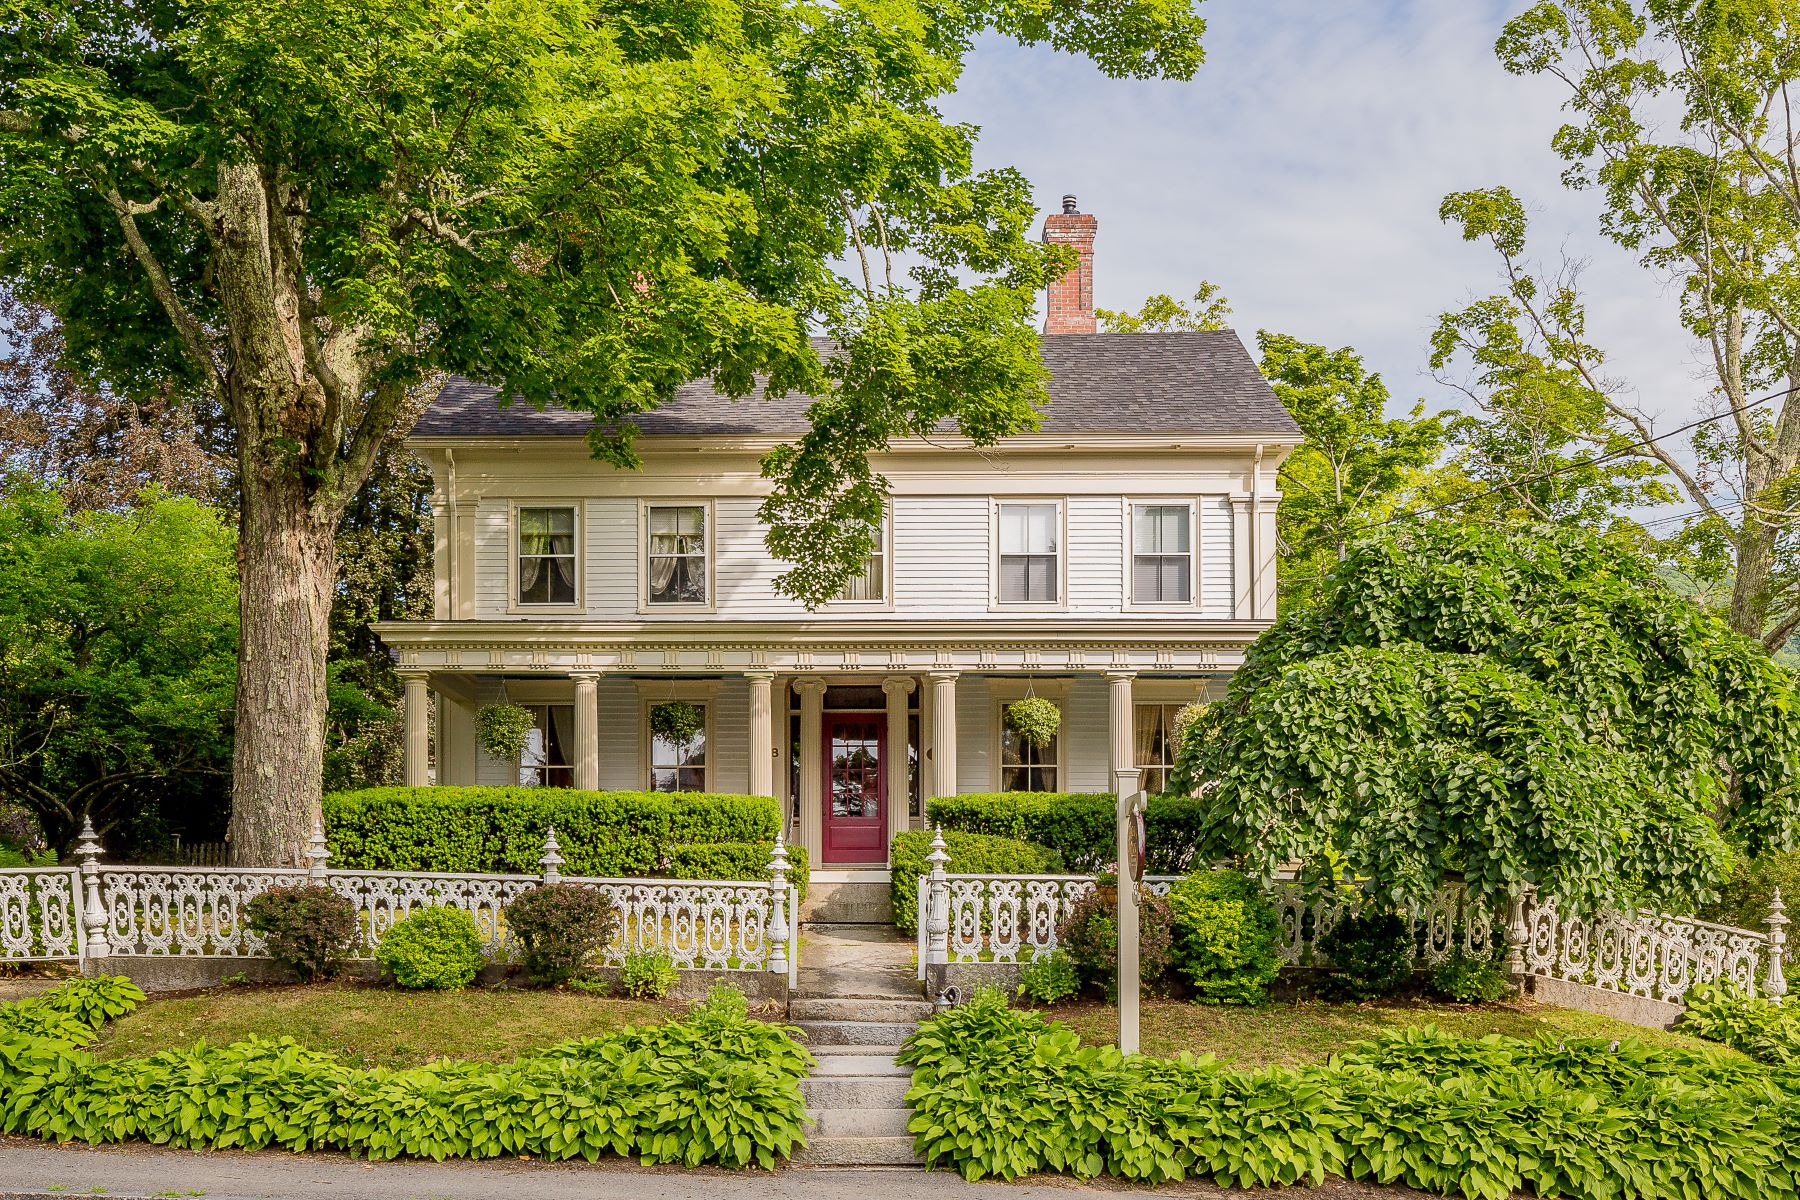 Bed and Breakfast Homes للـ Sale في Camden, Maine 04843 United States